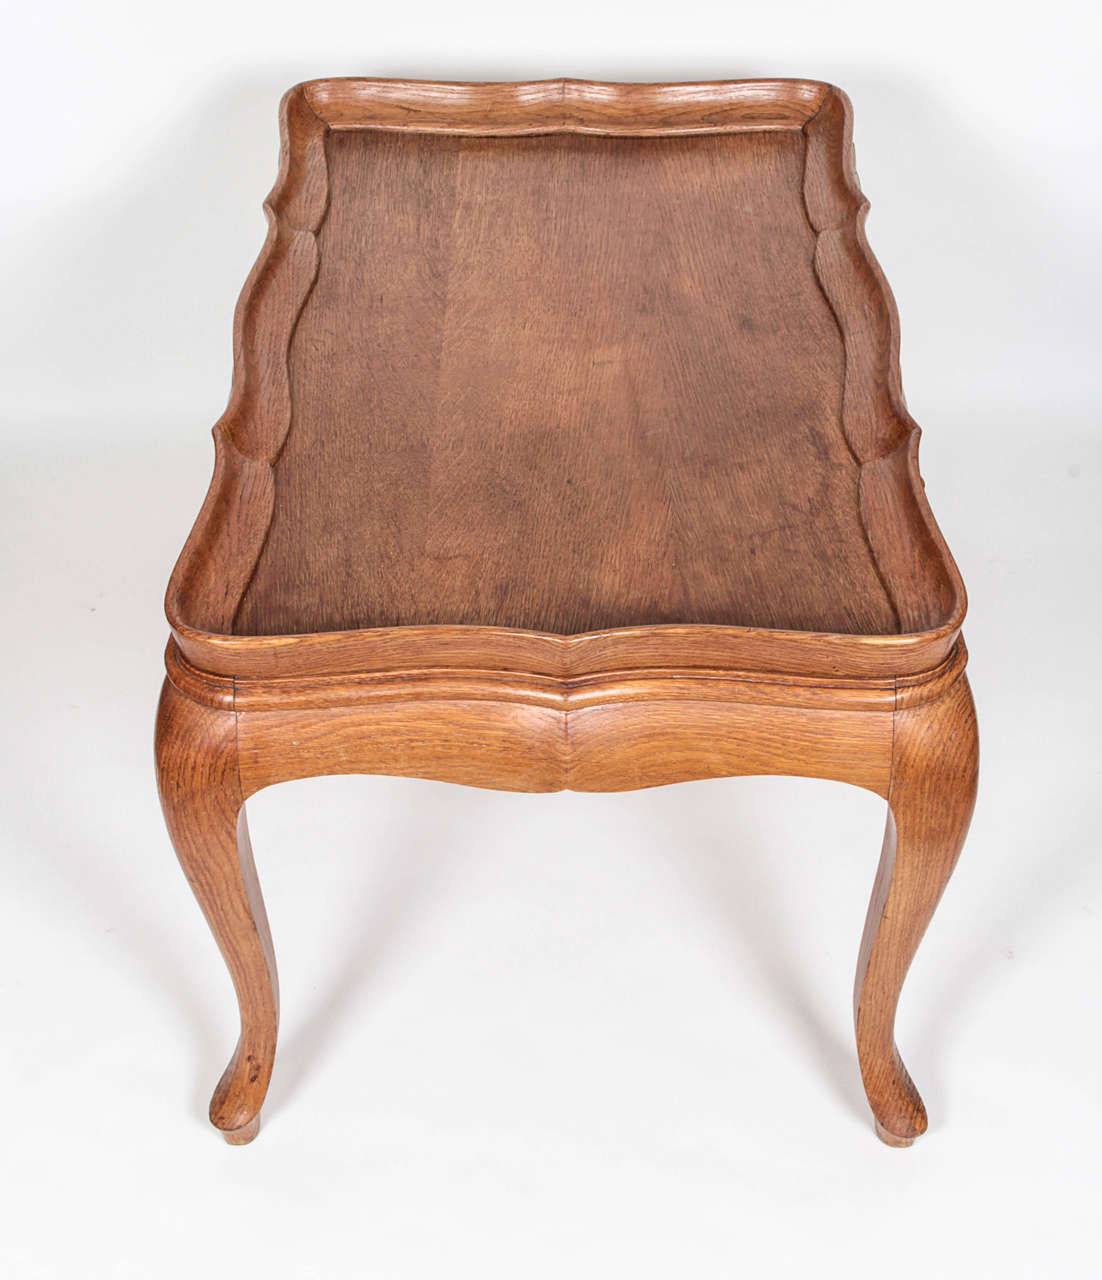 French Rococo Coffee Table: French Neo-Rococo Cocktail Table In Natural Oak, Circa